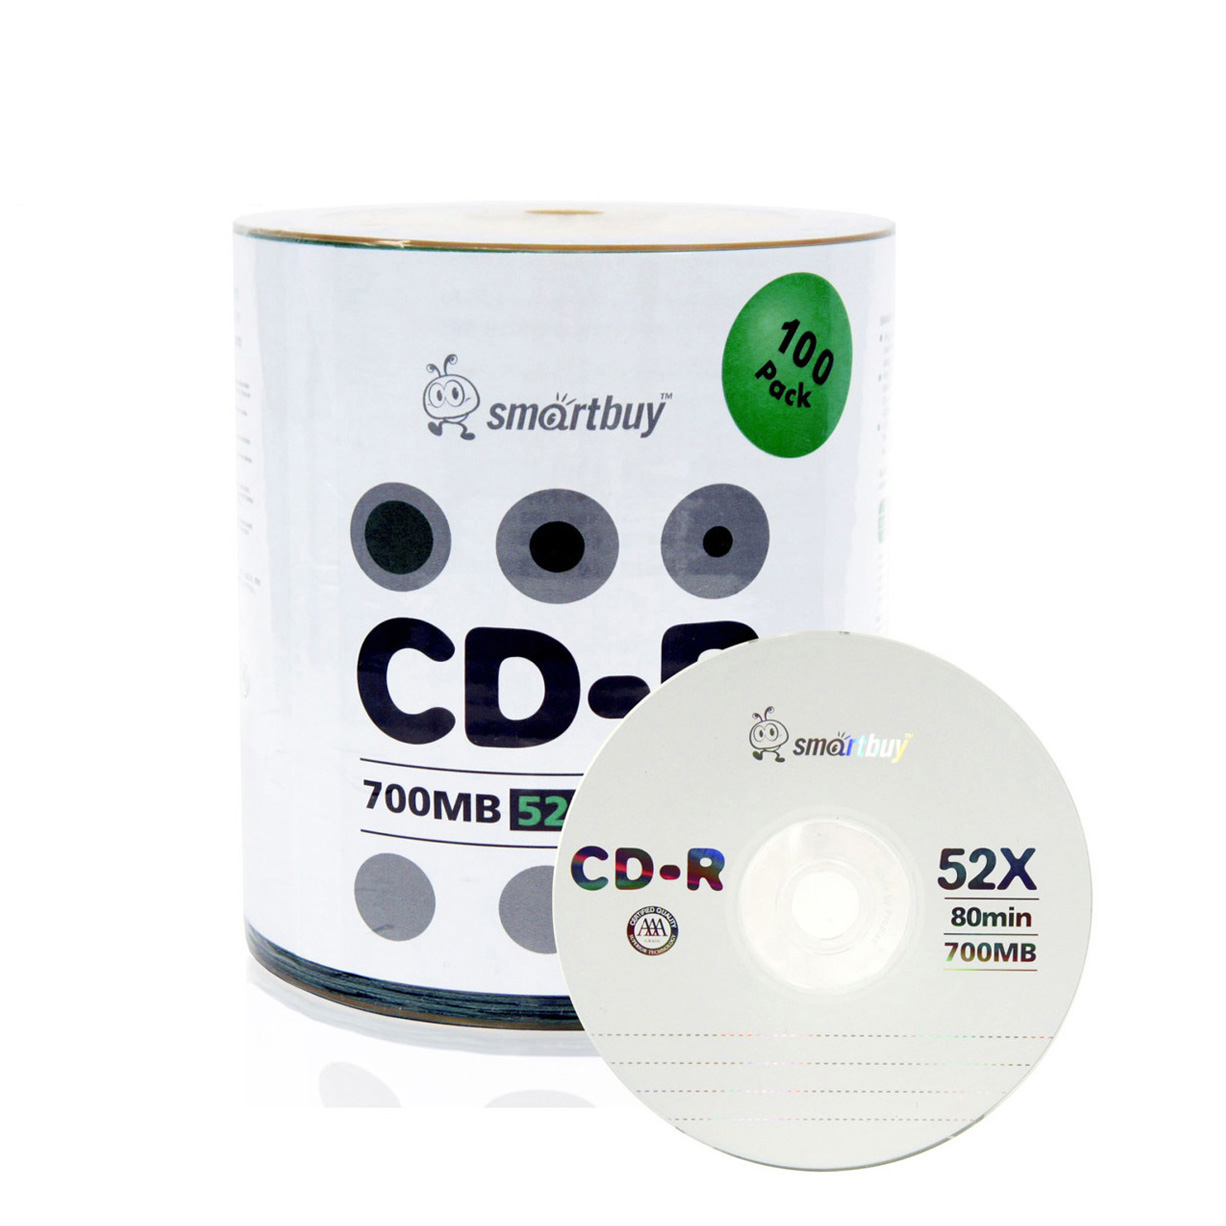 100 Pack Smartbuy 52X CD-R 700MB 80Min Logo (Non-Printable) Data Blank Media Recordable Disc